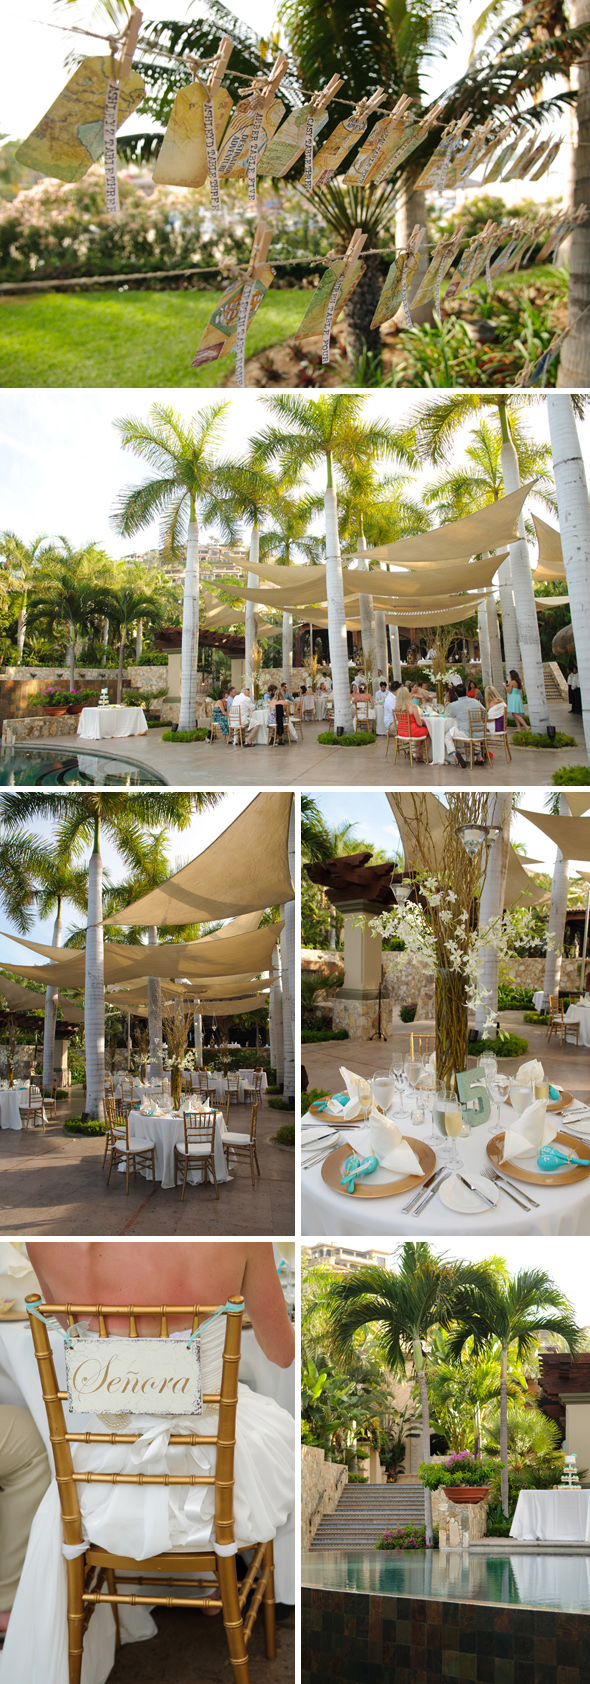 palmilla wedding